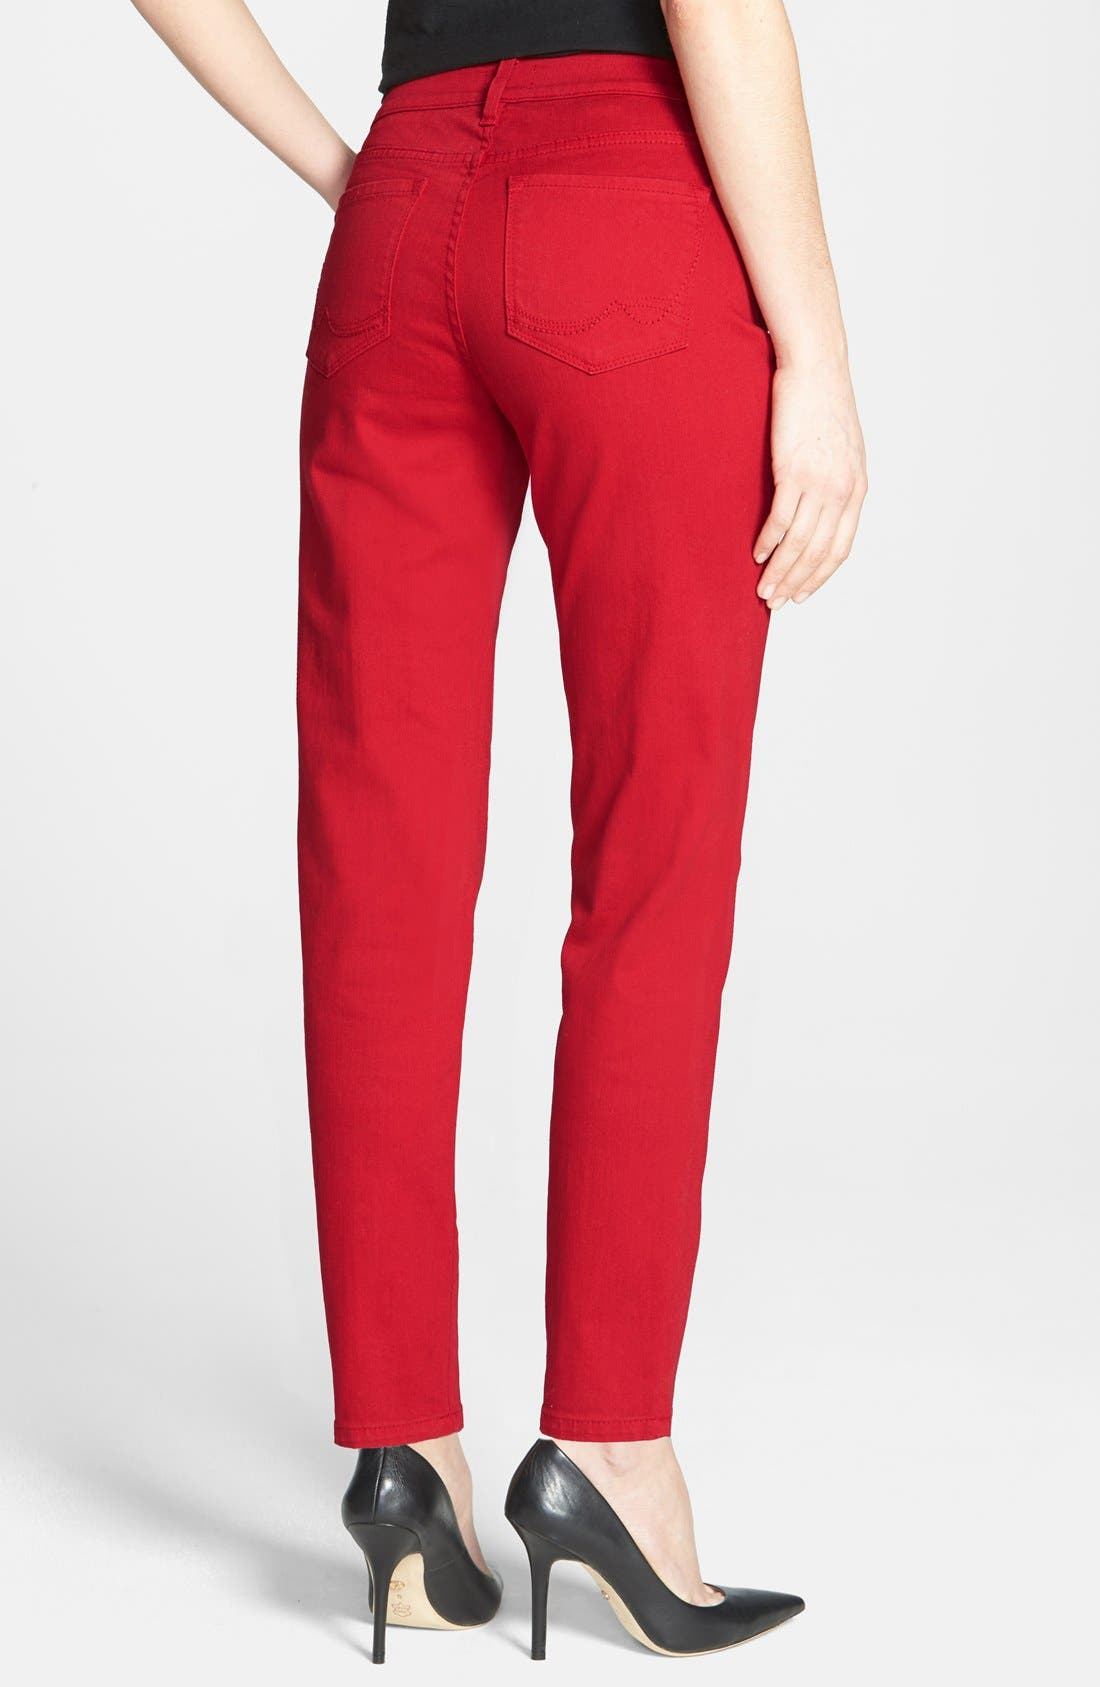 Alternate Image 2  - NYDJ 'Clarissa' Fitted Stretch Ankle Skinny Jeans (Regular & Petite)